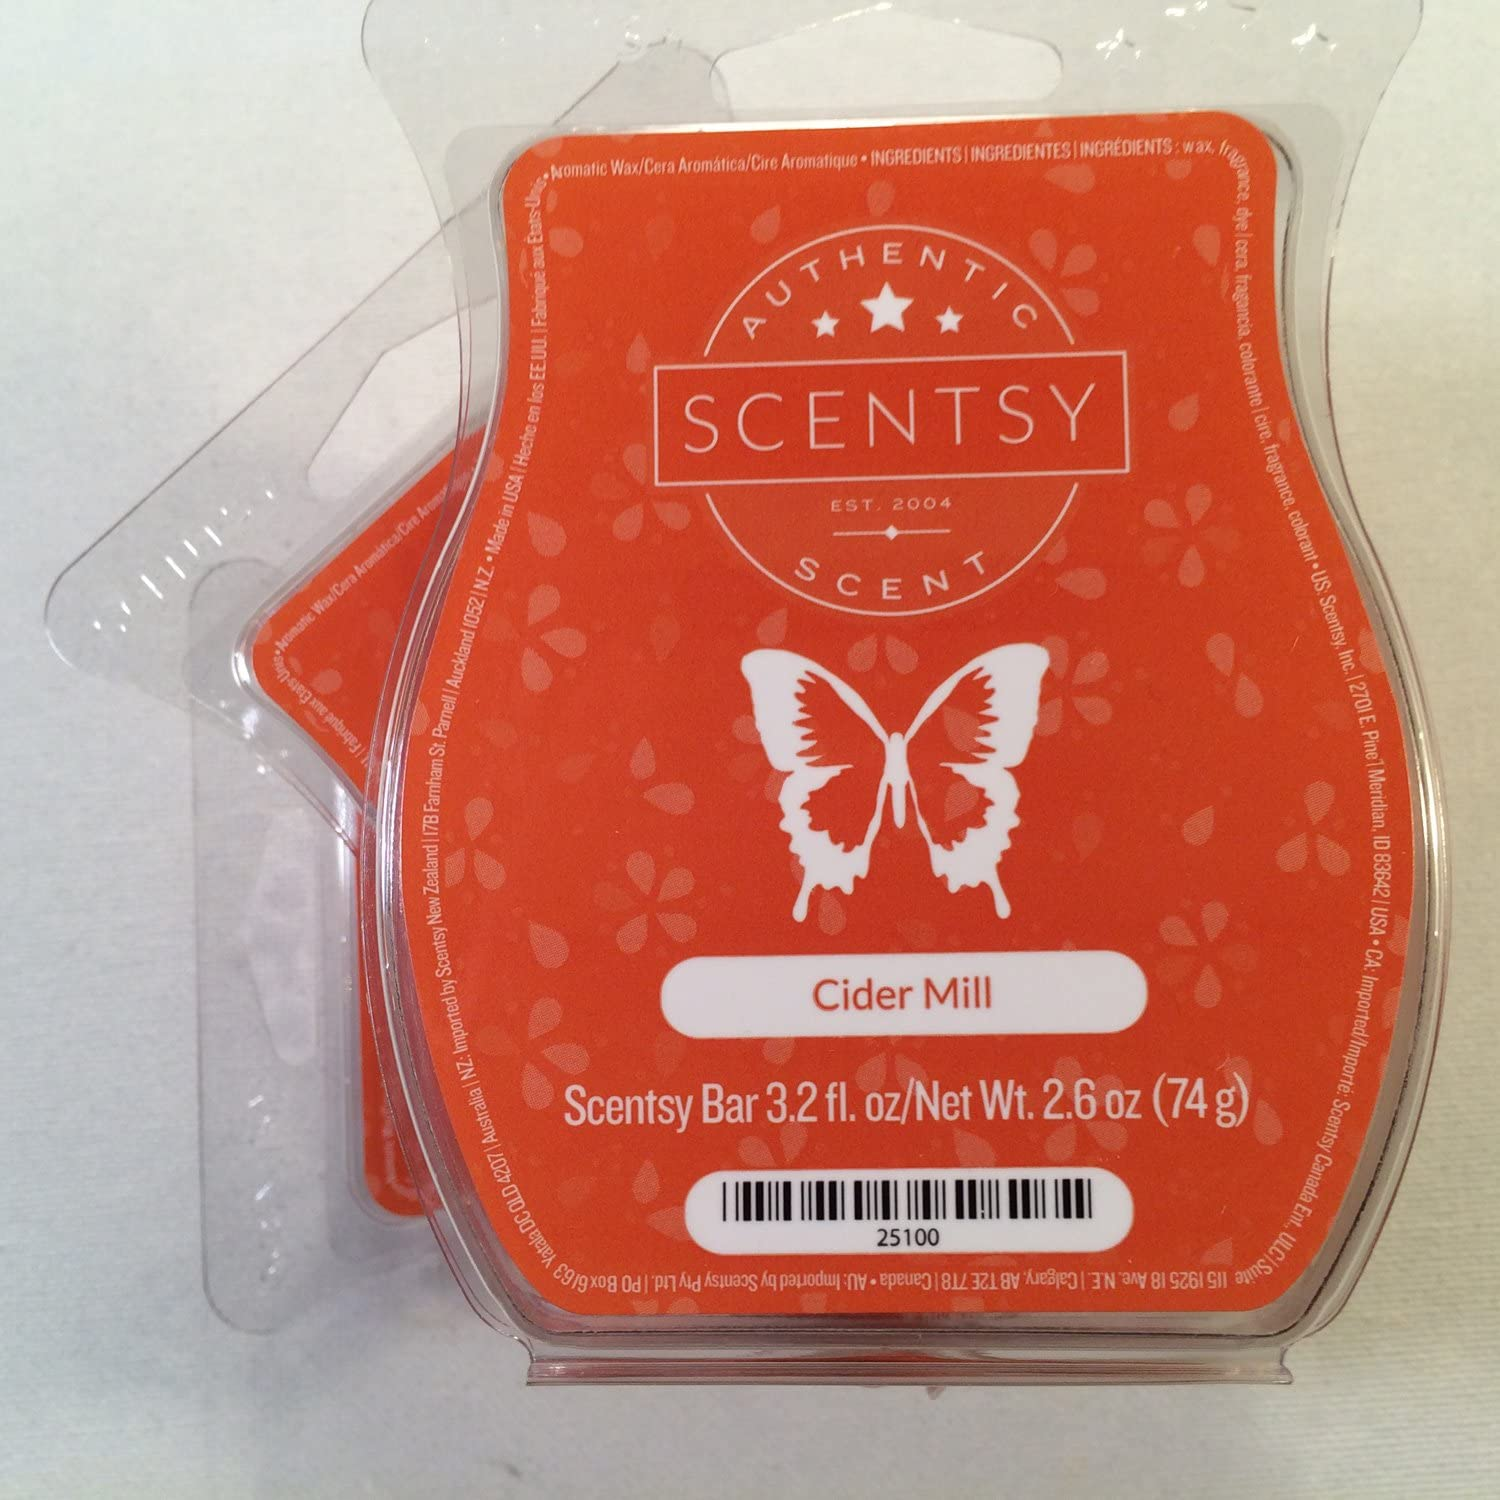 Scentsy, Cider Mill, Wickless Candle Tart Warmer Wax 3.2 Oz Bar, 3-pack (3)